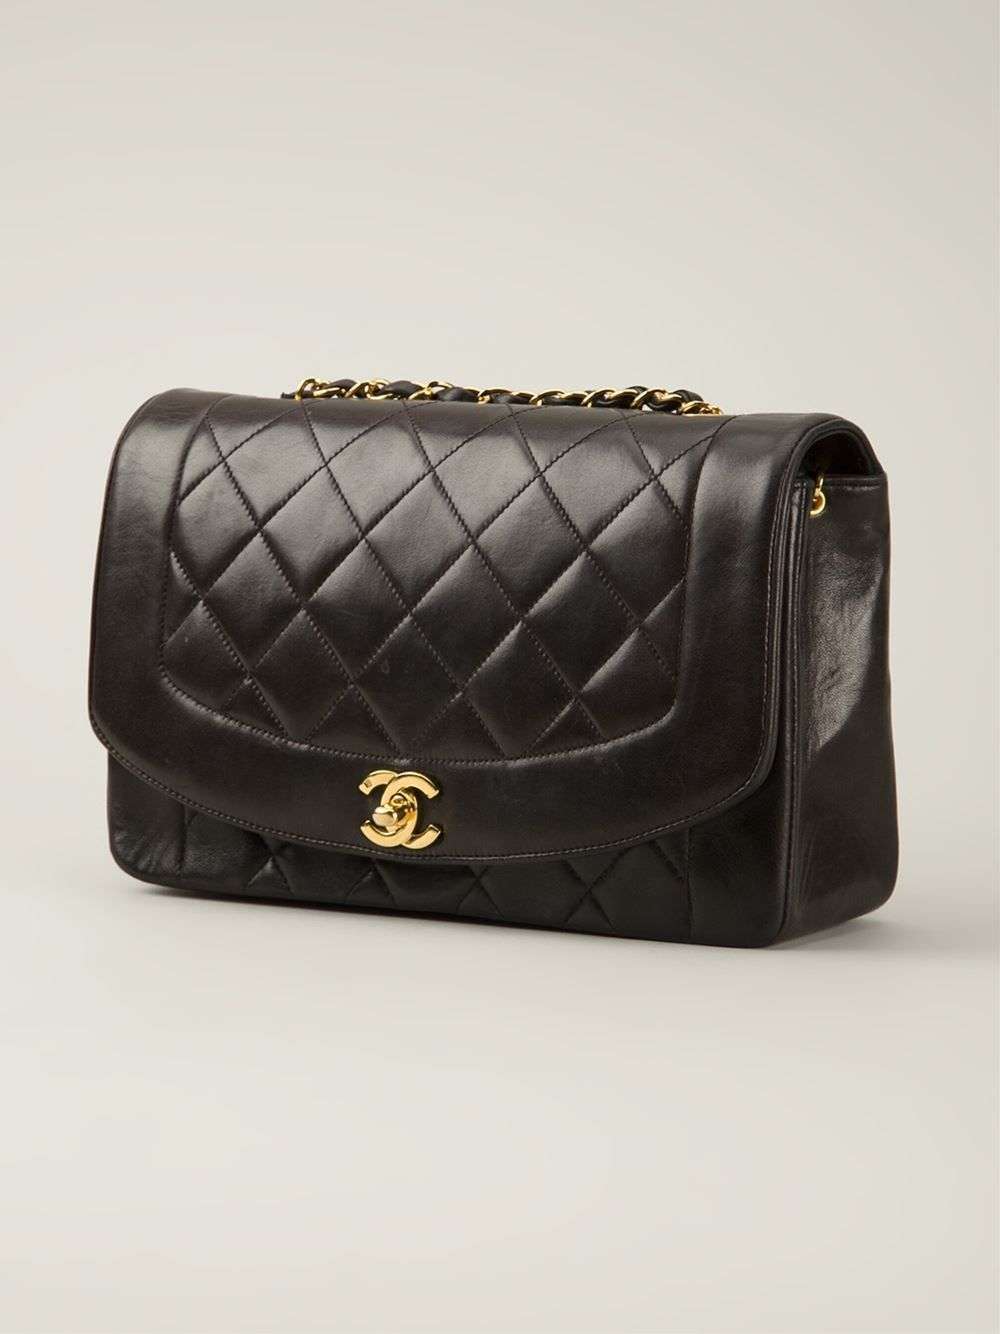 Chanel Vintage Quilted Shoulder Bag - Bella Bag - Farfetch.com